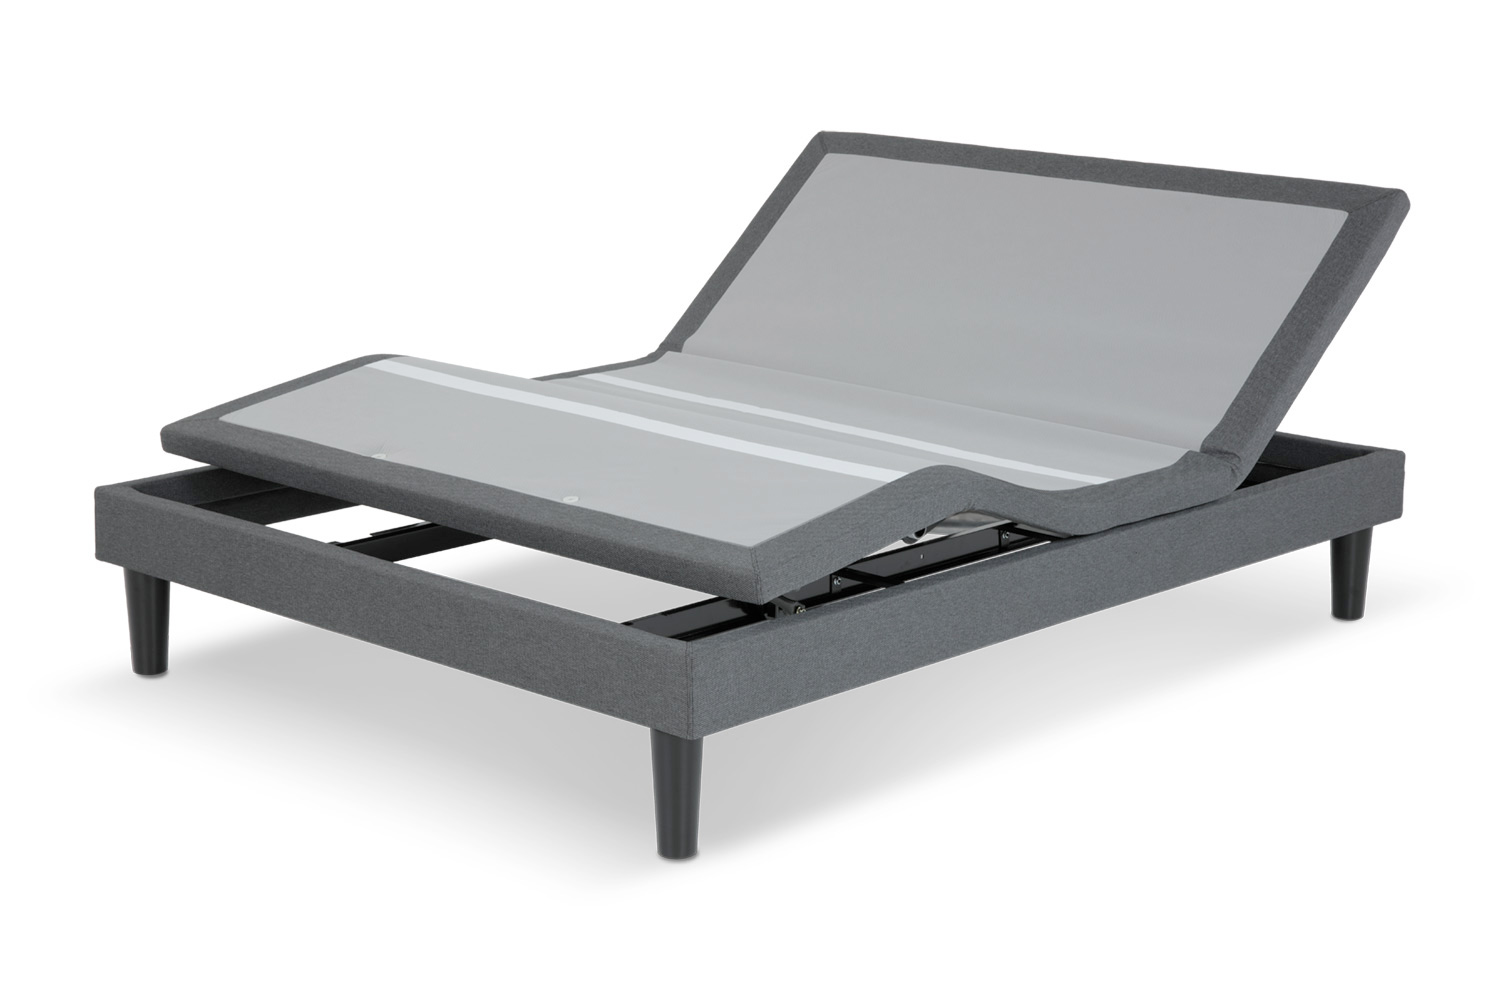 oakland adjustable bed motorized frame power base by leggett & platt